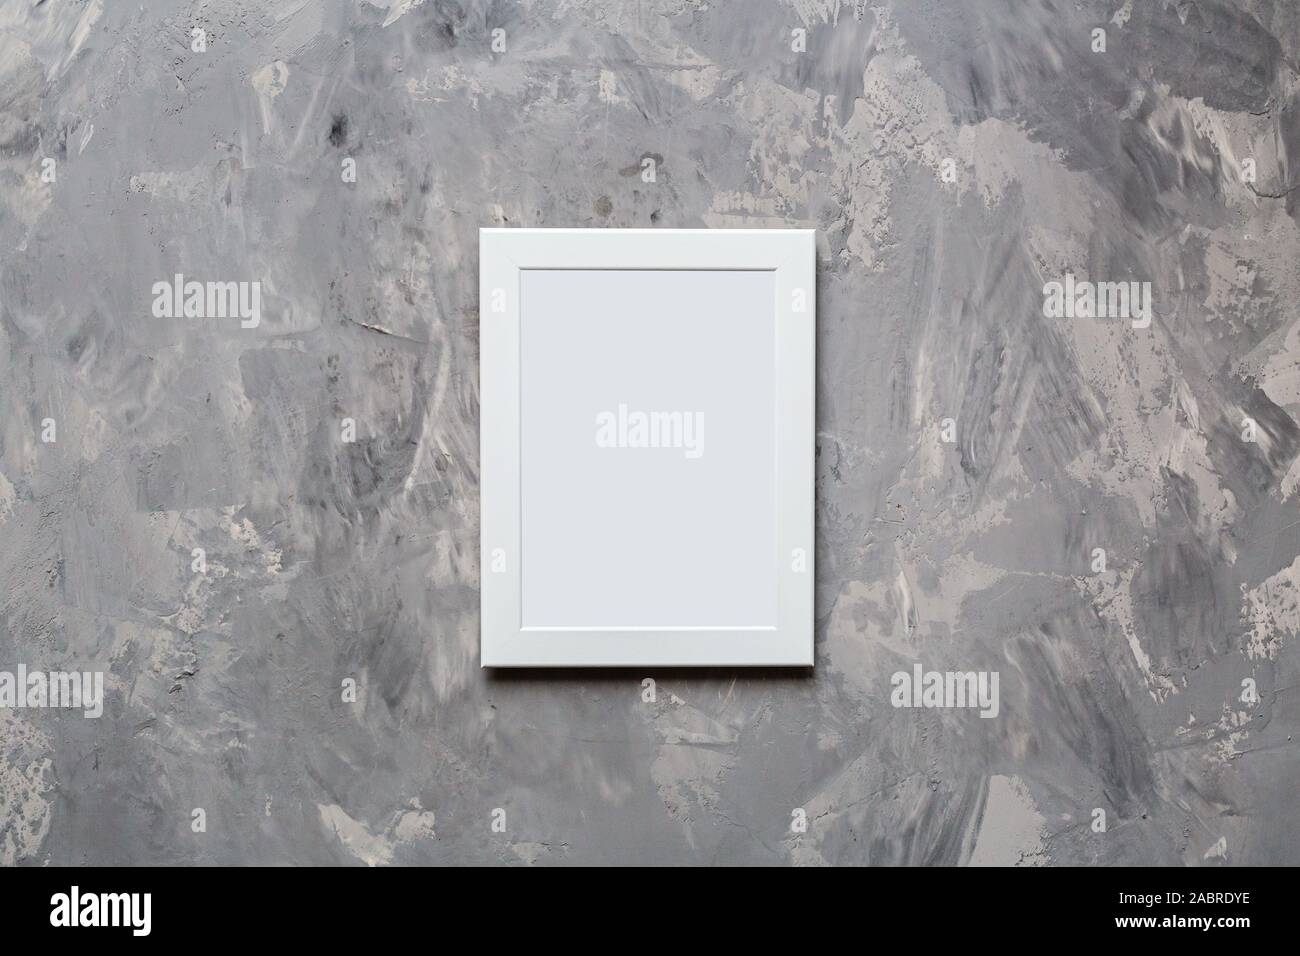 photo frame on gray concrete background. Wedding. Birthday. Happy woman's day. Mothers Day. Valentine's Day. Flat lay, top view, mockup, template Stock Photo